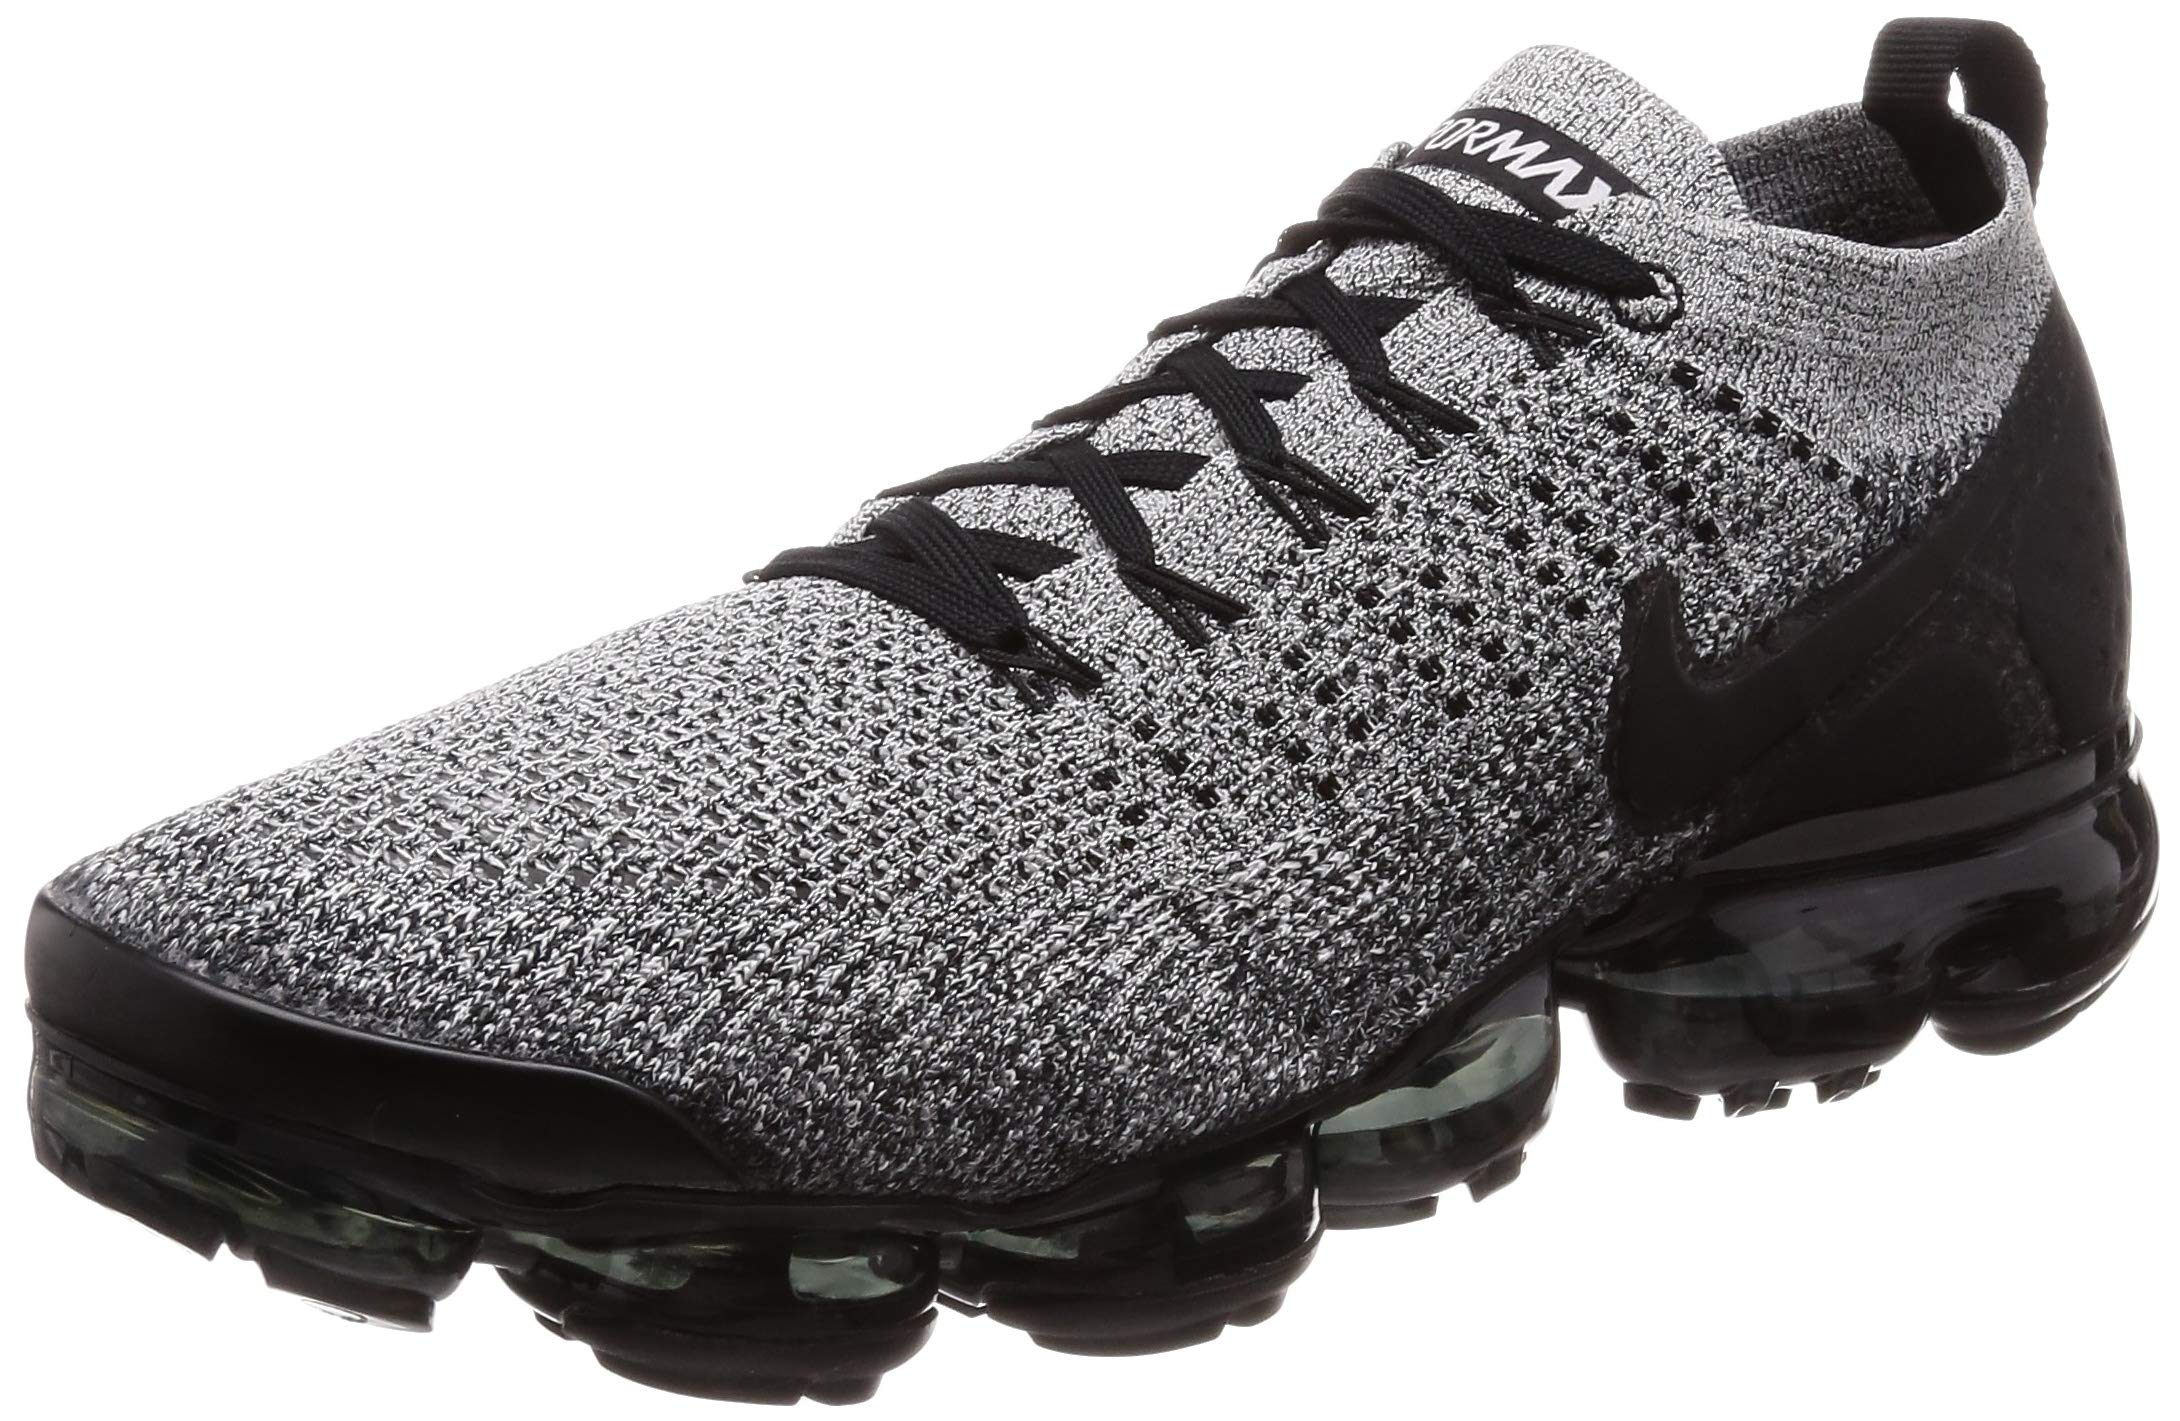 online store 6ccdf 5abf8 Nike Men's Air Vapormax Flyknit 2 Running Shoes (11, White/Black/Black)